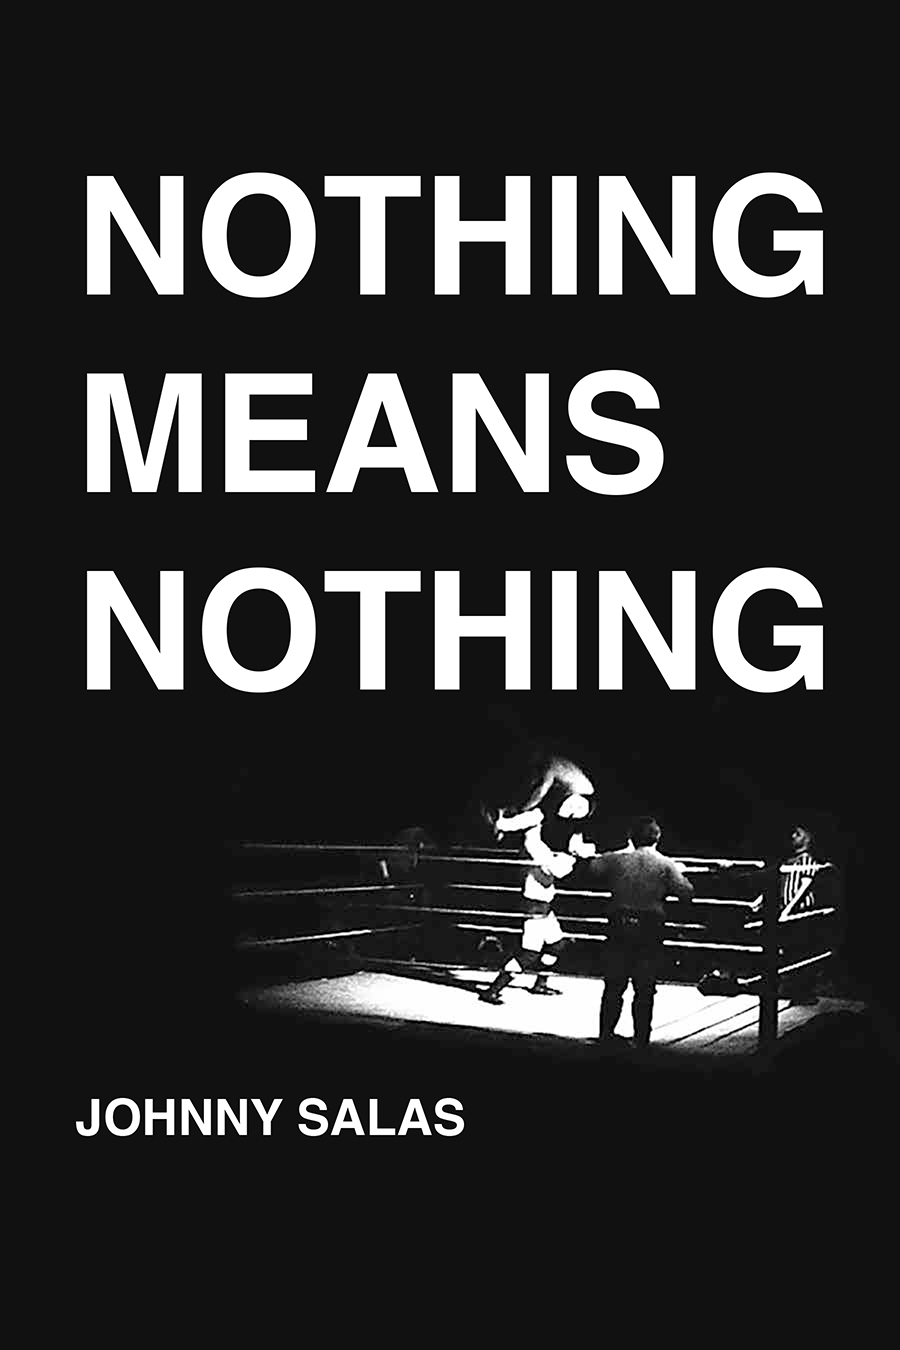 Nothing Means Nothing